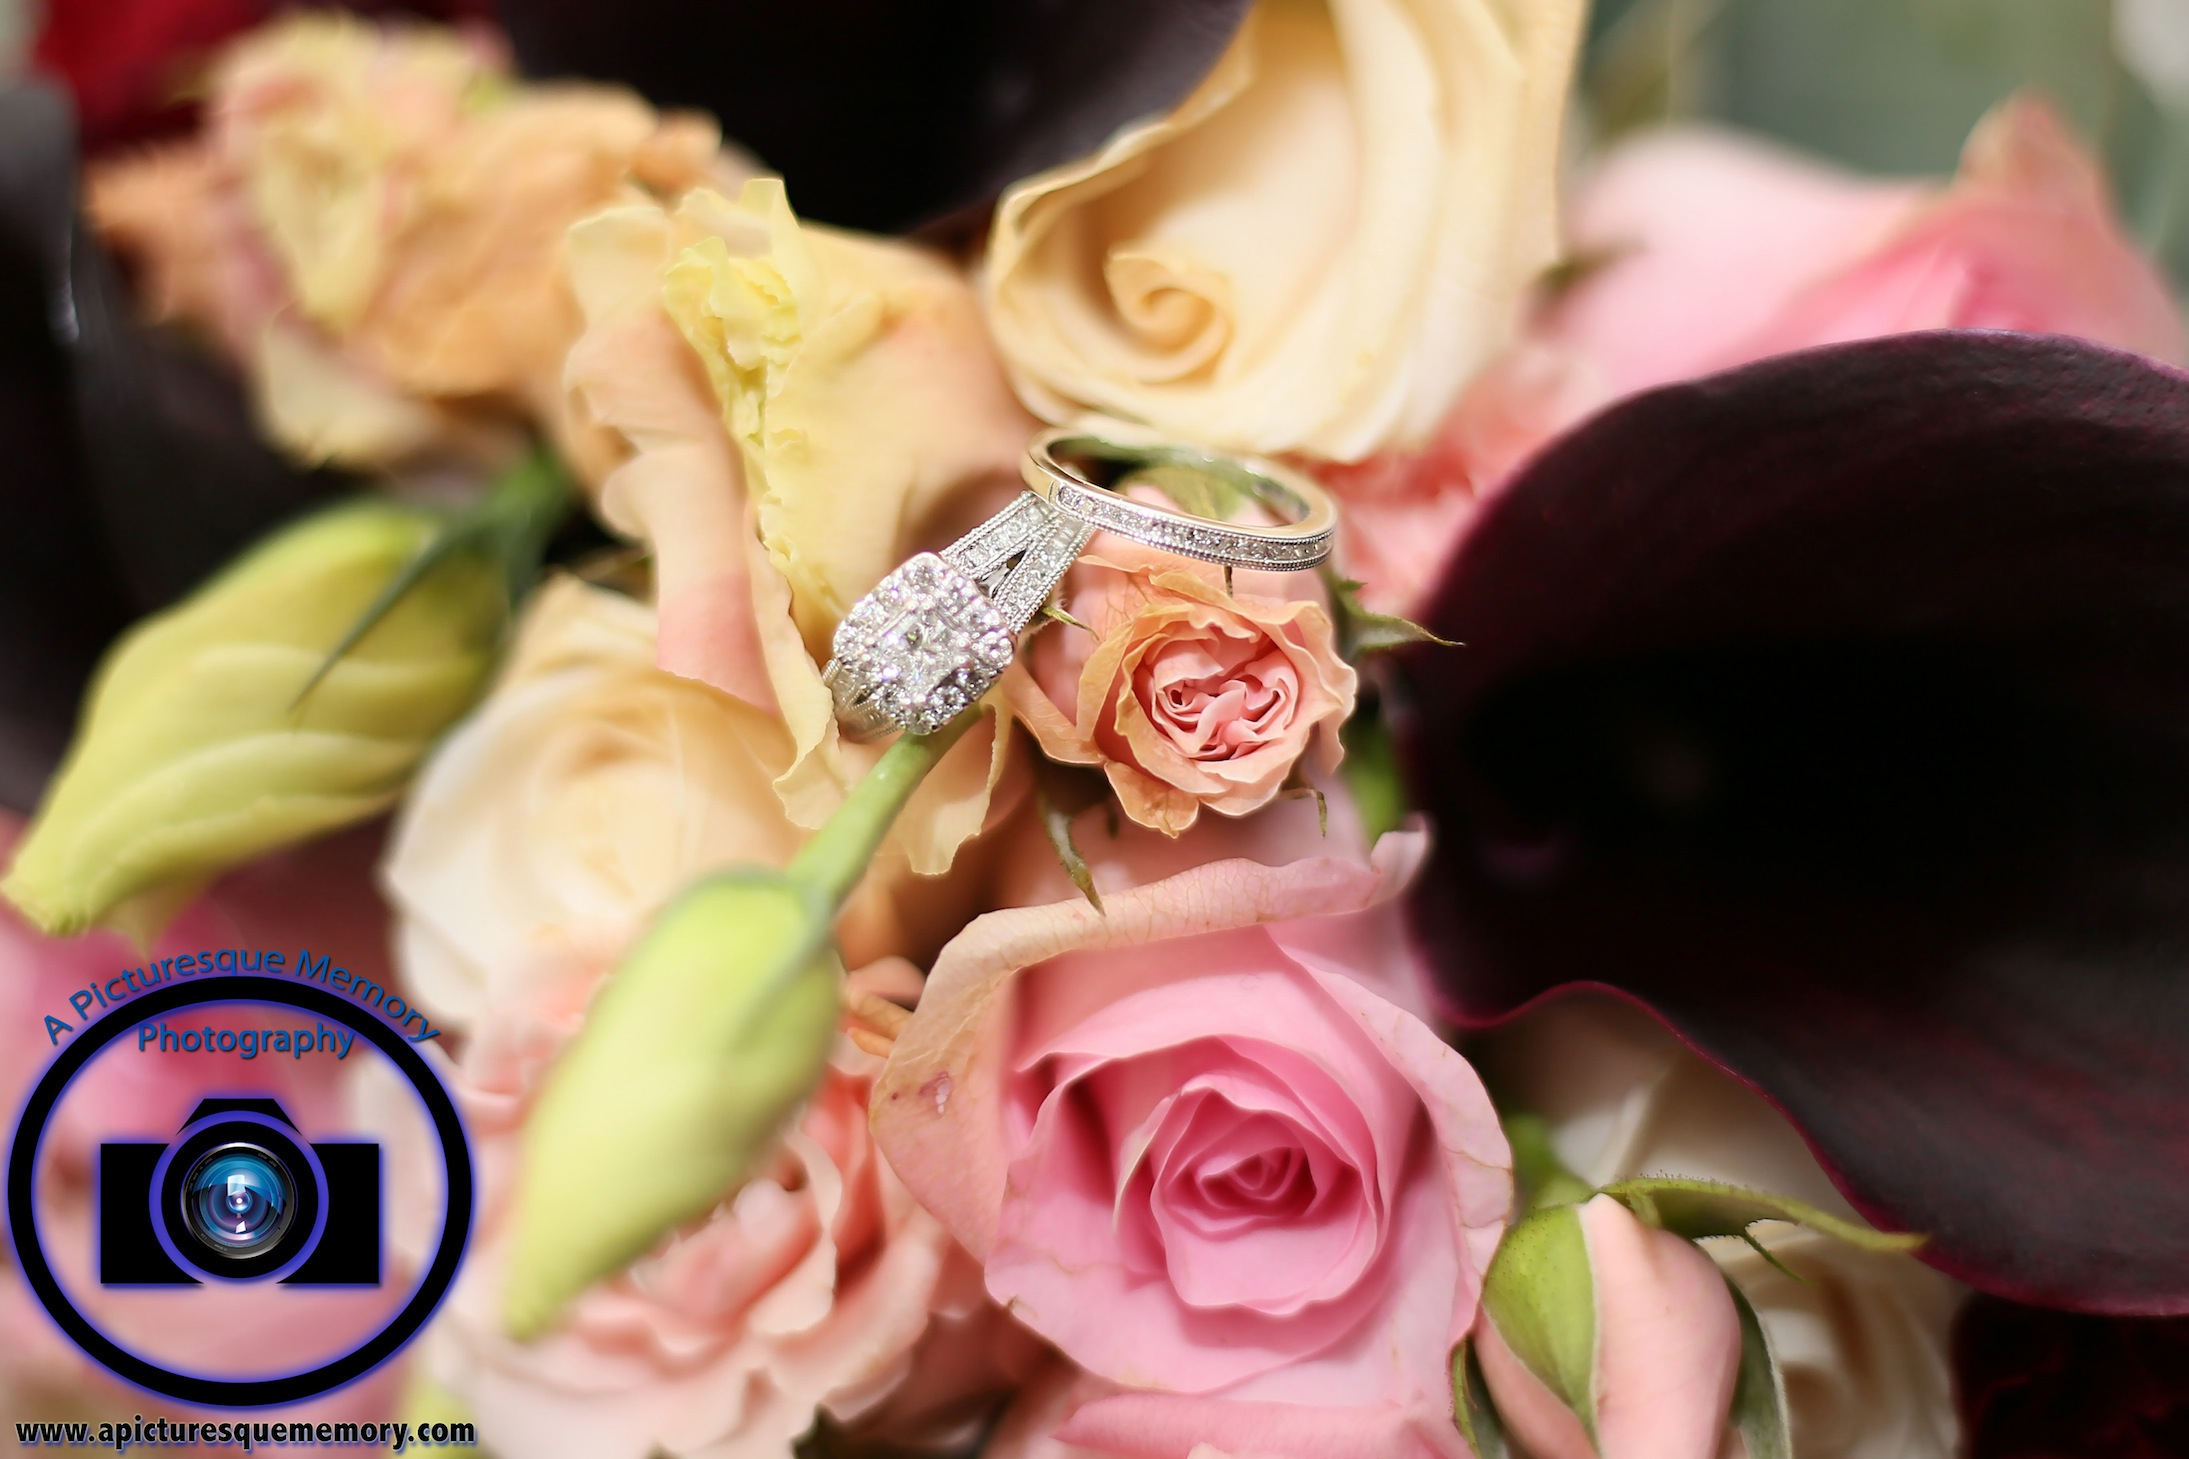 #njwedding, #njweddingphotography, #northbrunswickweddingphotographer#weddingphotos, #apicturesquememoryphotography, #staybridgesuitesweddingphotographer, #bridesbouquet, #weddingband, #engagementring